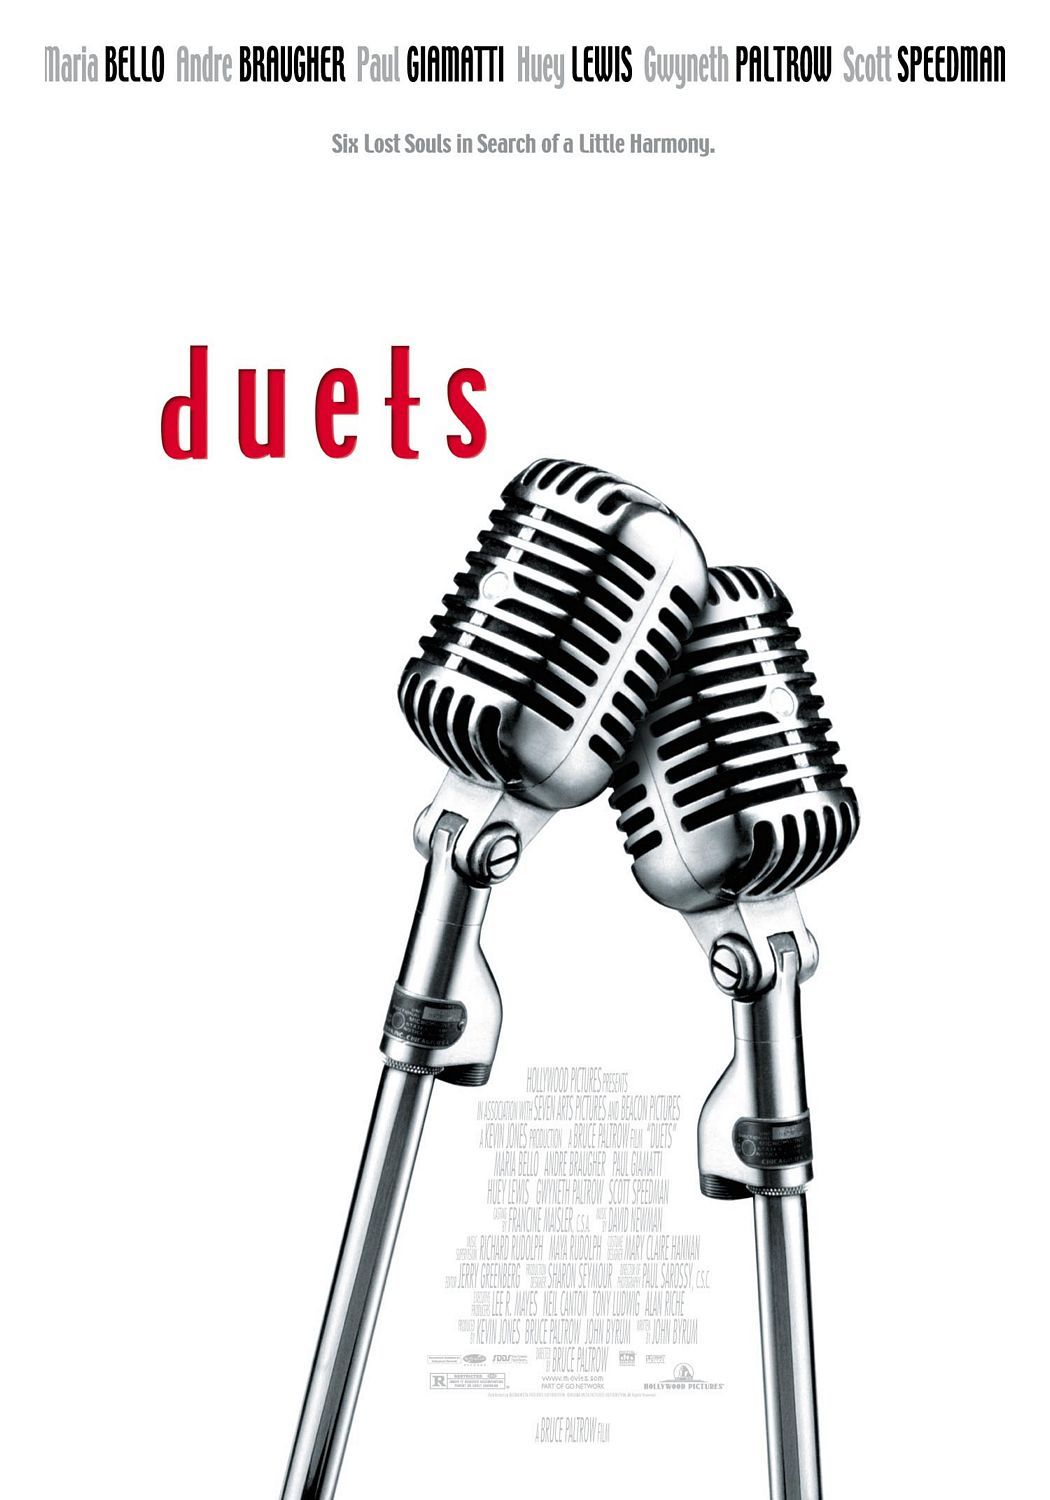 Duets , starring Huey Lewis, Gwyneth Paltrow, Paul Giamatti, Andre Braugher. A professional karaoke hustler reconnects with his daughter and a bored suburban businessman turns outlaw karaoke singer, among other plotlines. #Comedy #Drama #Music